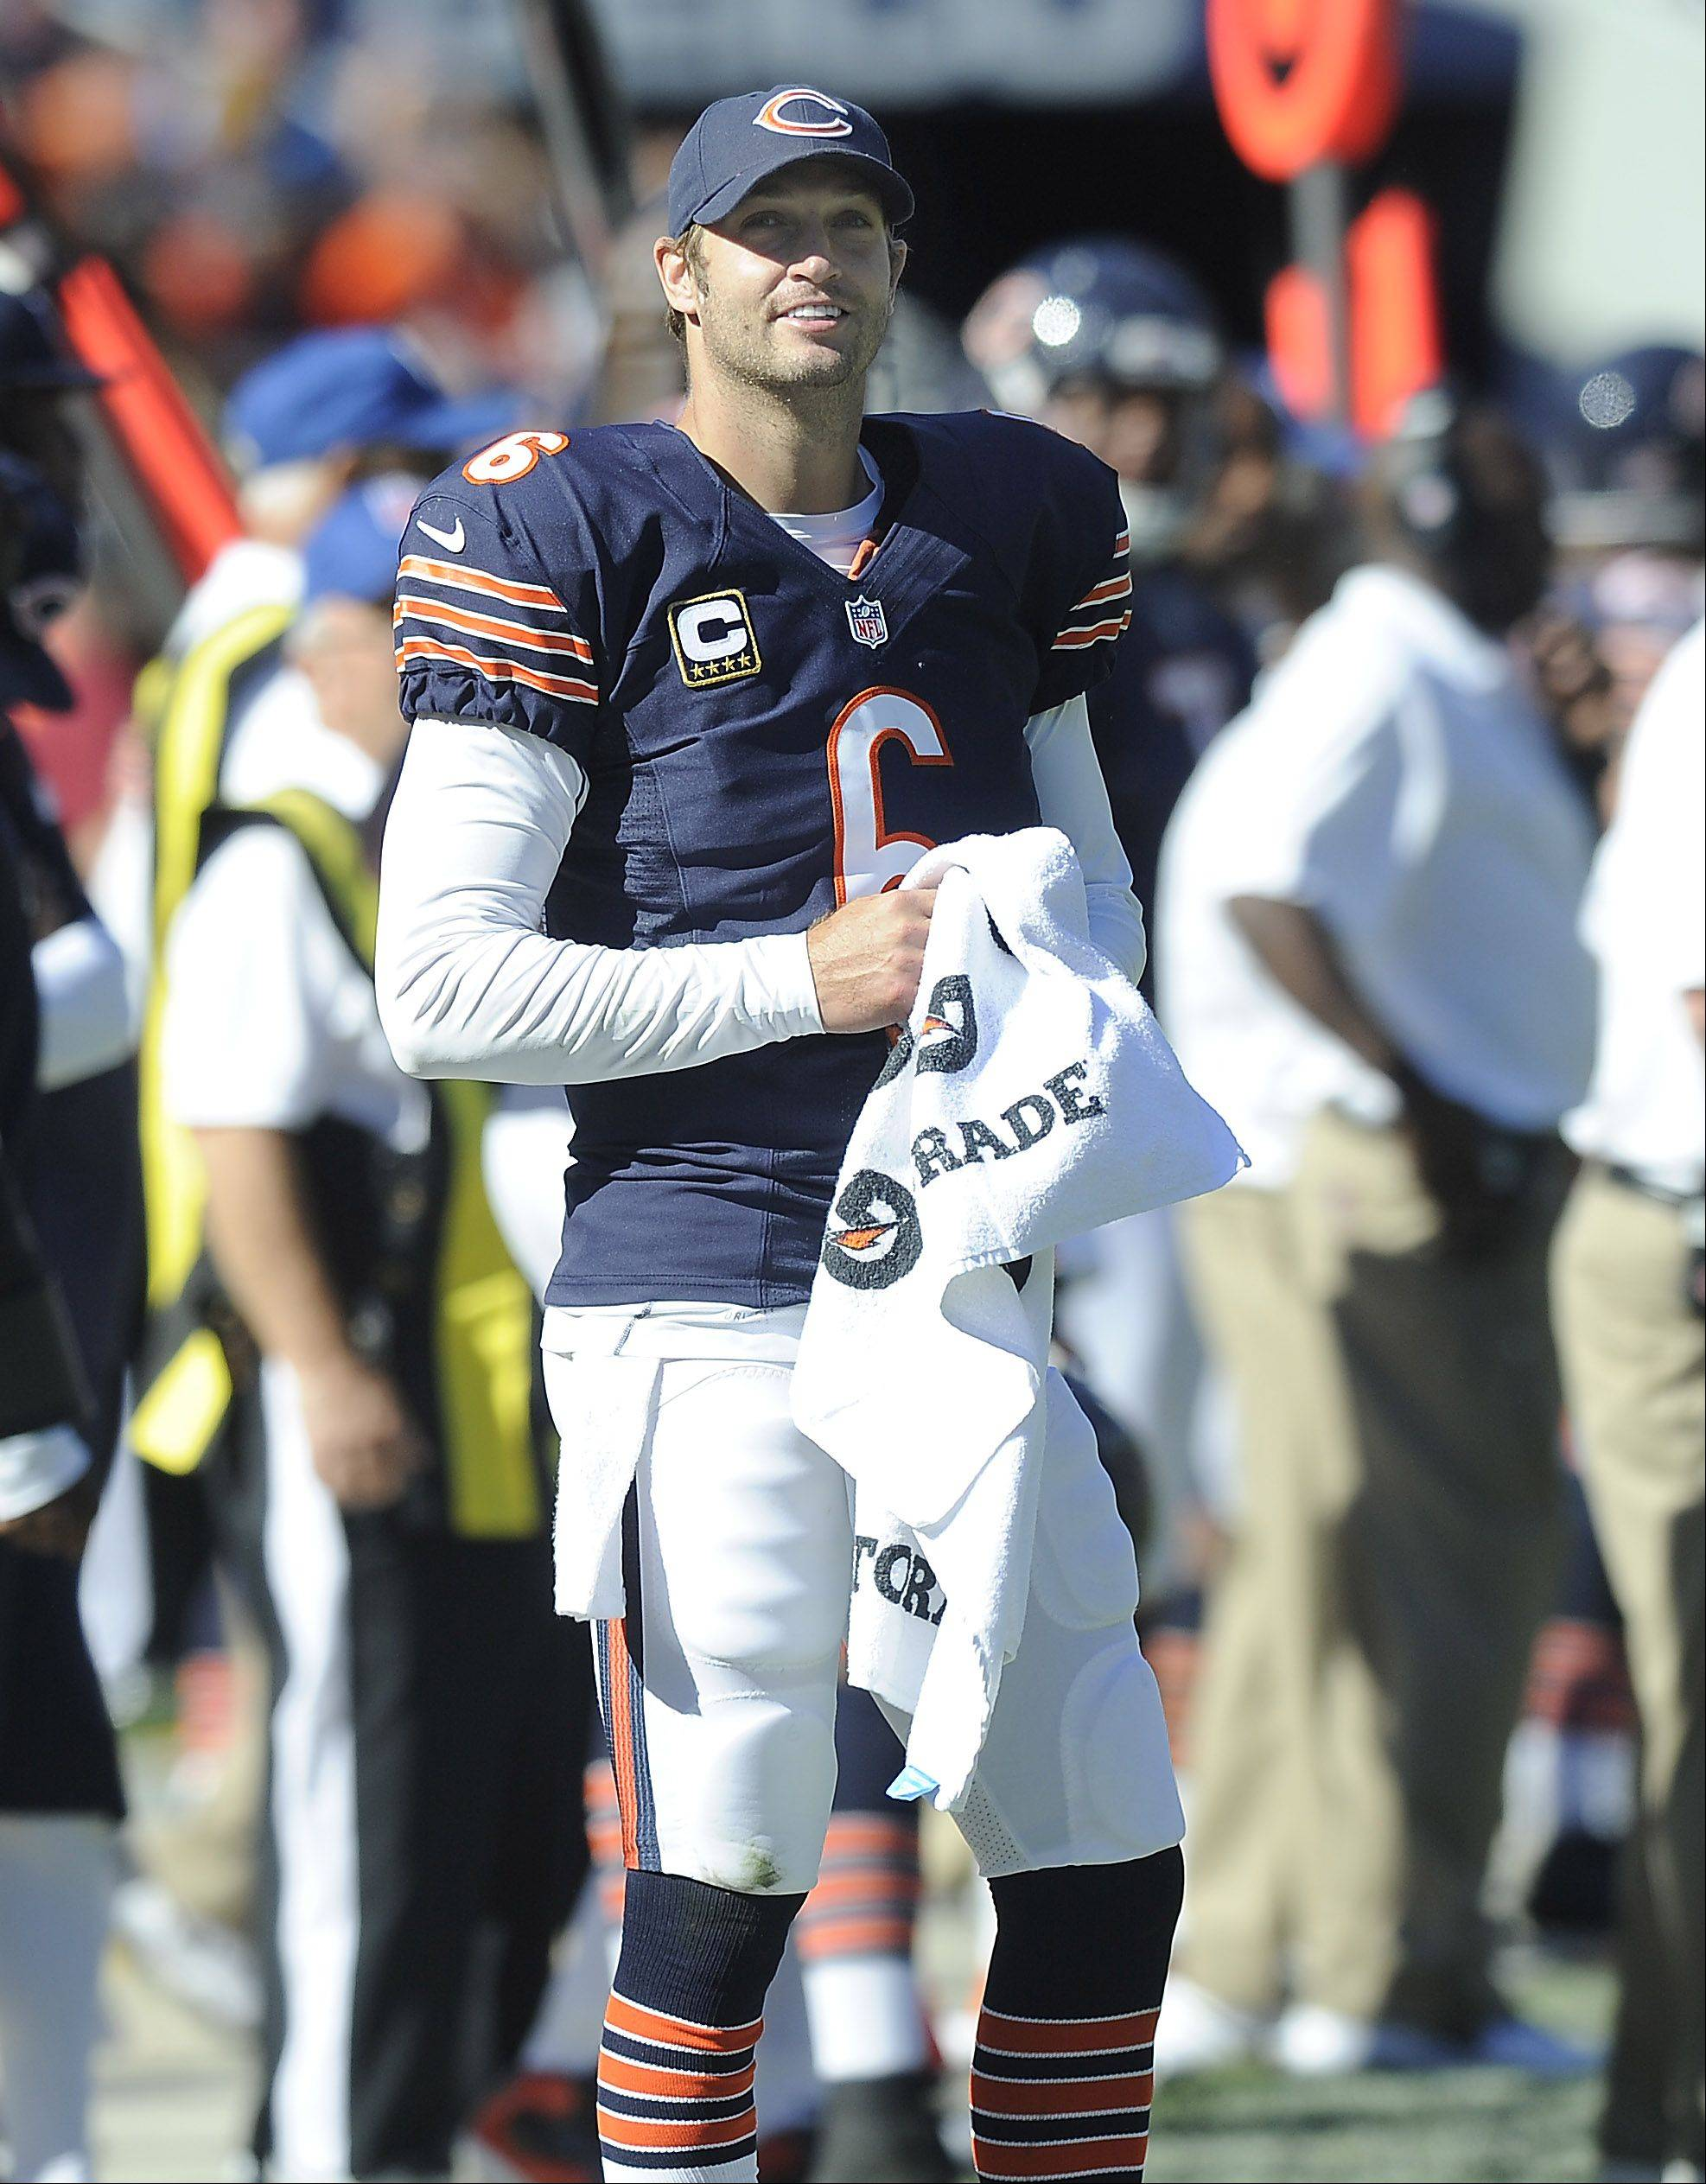 Chicago Bears quarterback Jay Cutler is all smiles as he looks to the scoreboard late in the 4th quarter during the Bears home opener against the Colts at Soldier Field in Chicago.